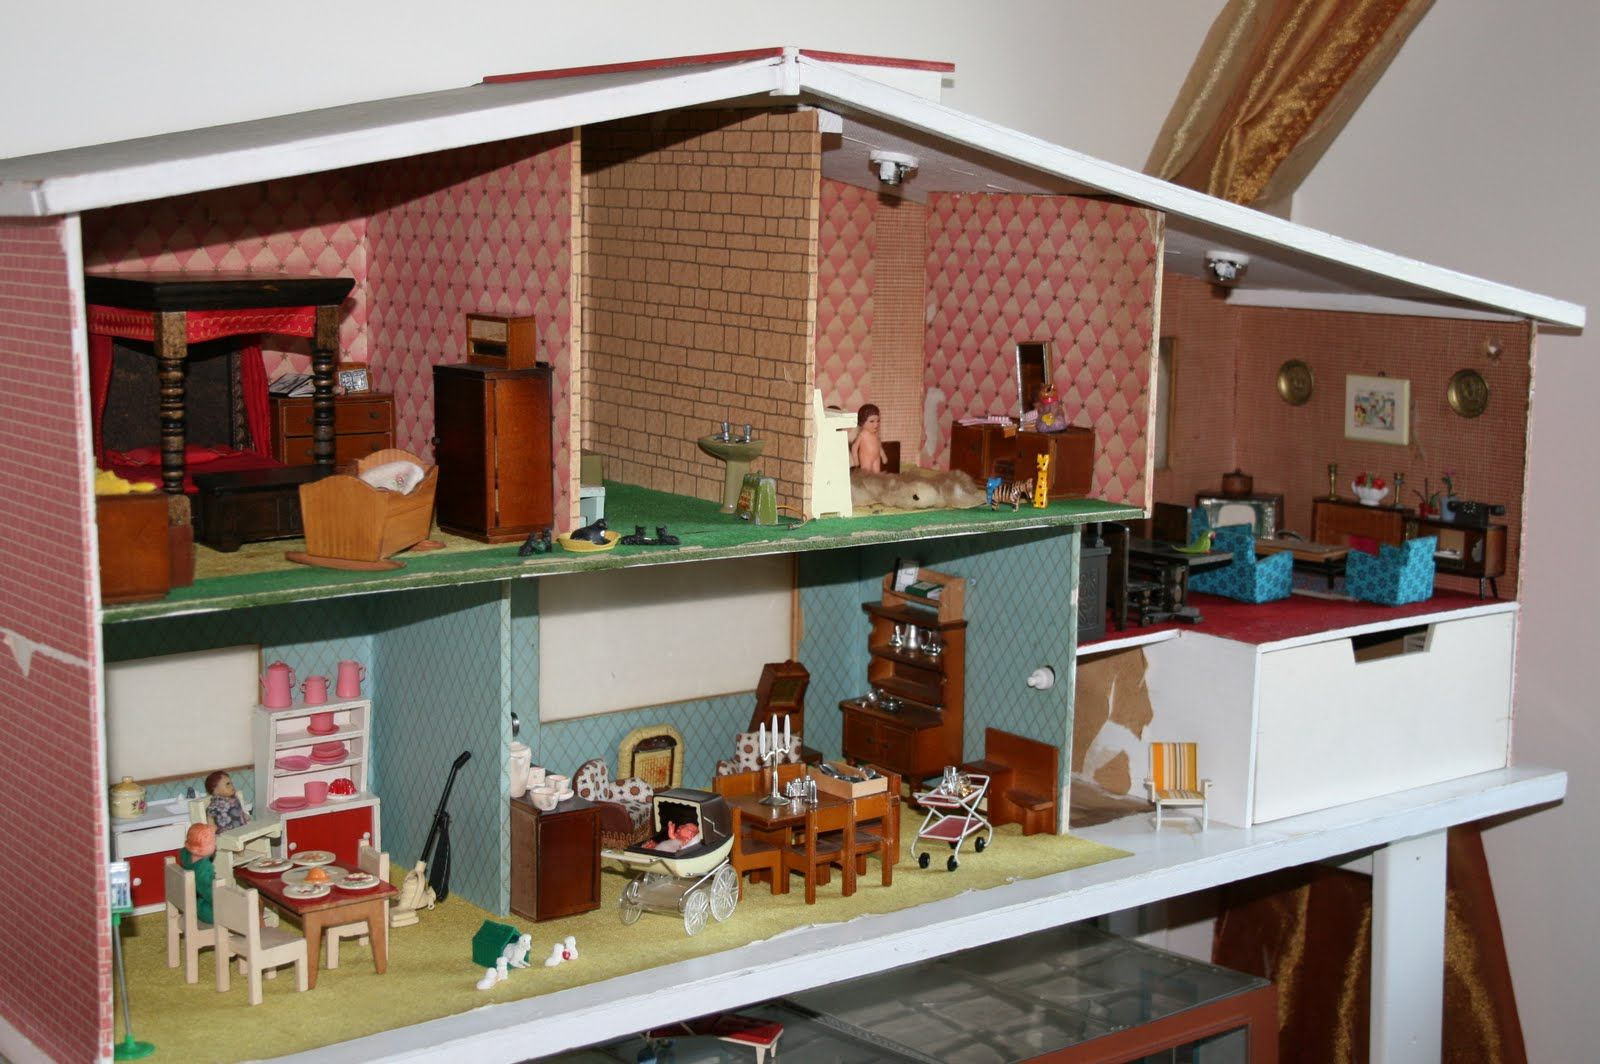 Melissa Sent Me These Great Pics Of A Split Level Custom Dollhouse She Renovated That She Found On Craigslist For 25 In Dc She Was Told I